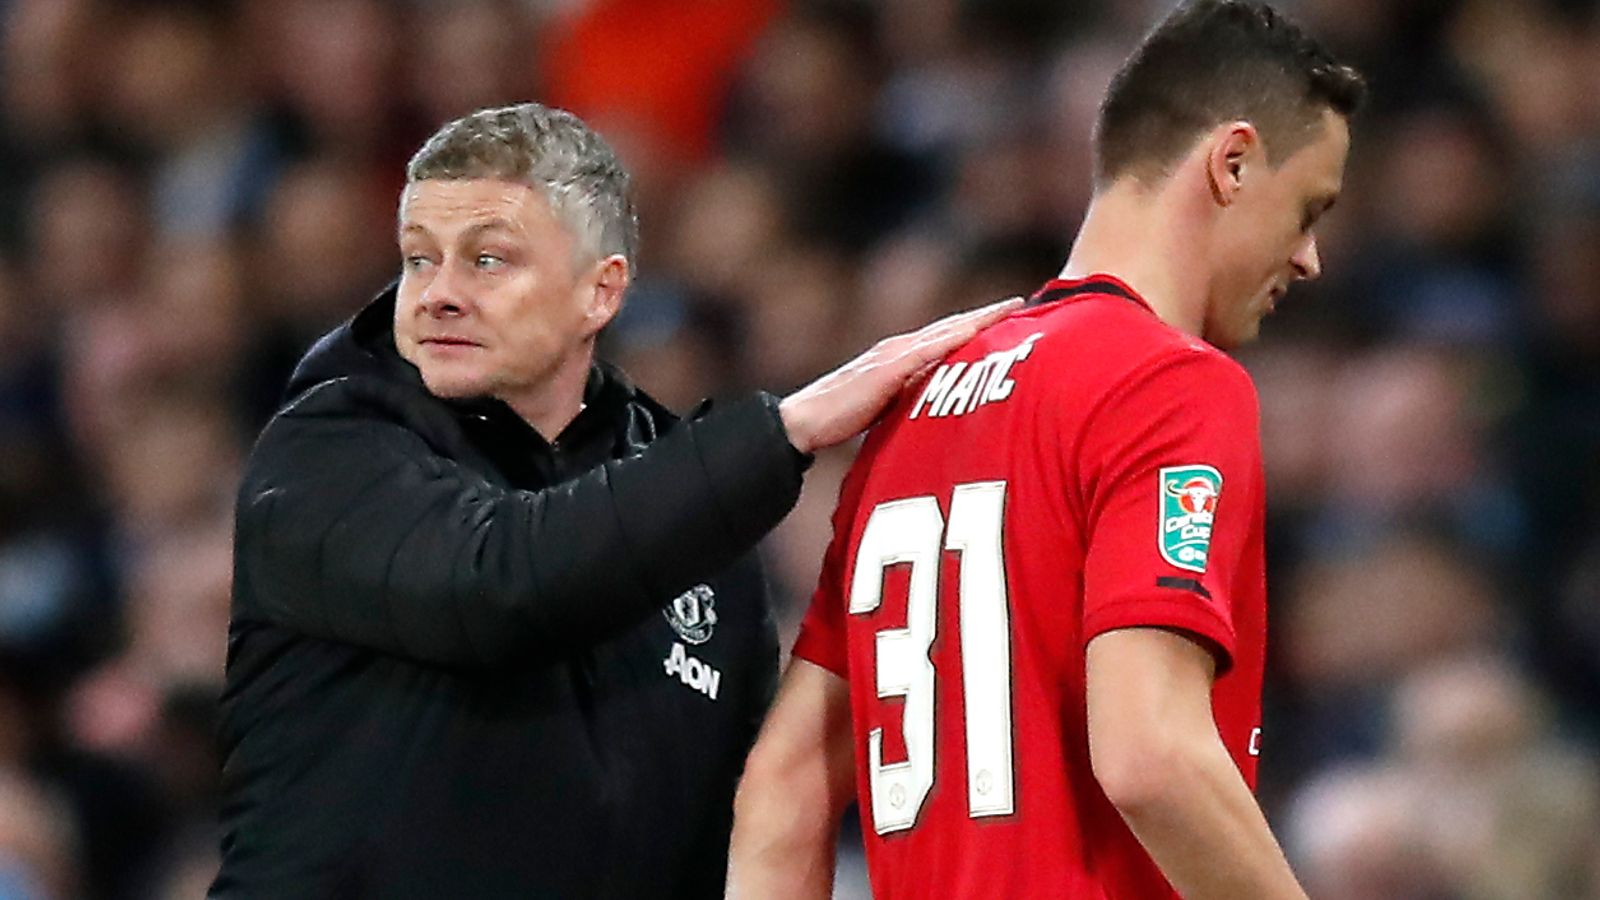 Ole Gunnar Solskjaer a 'much better manager than one year ago', says Nemanja Matic